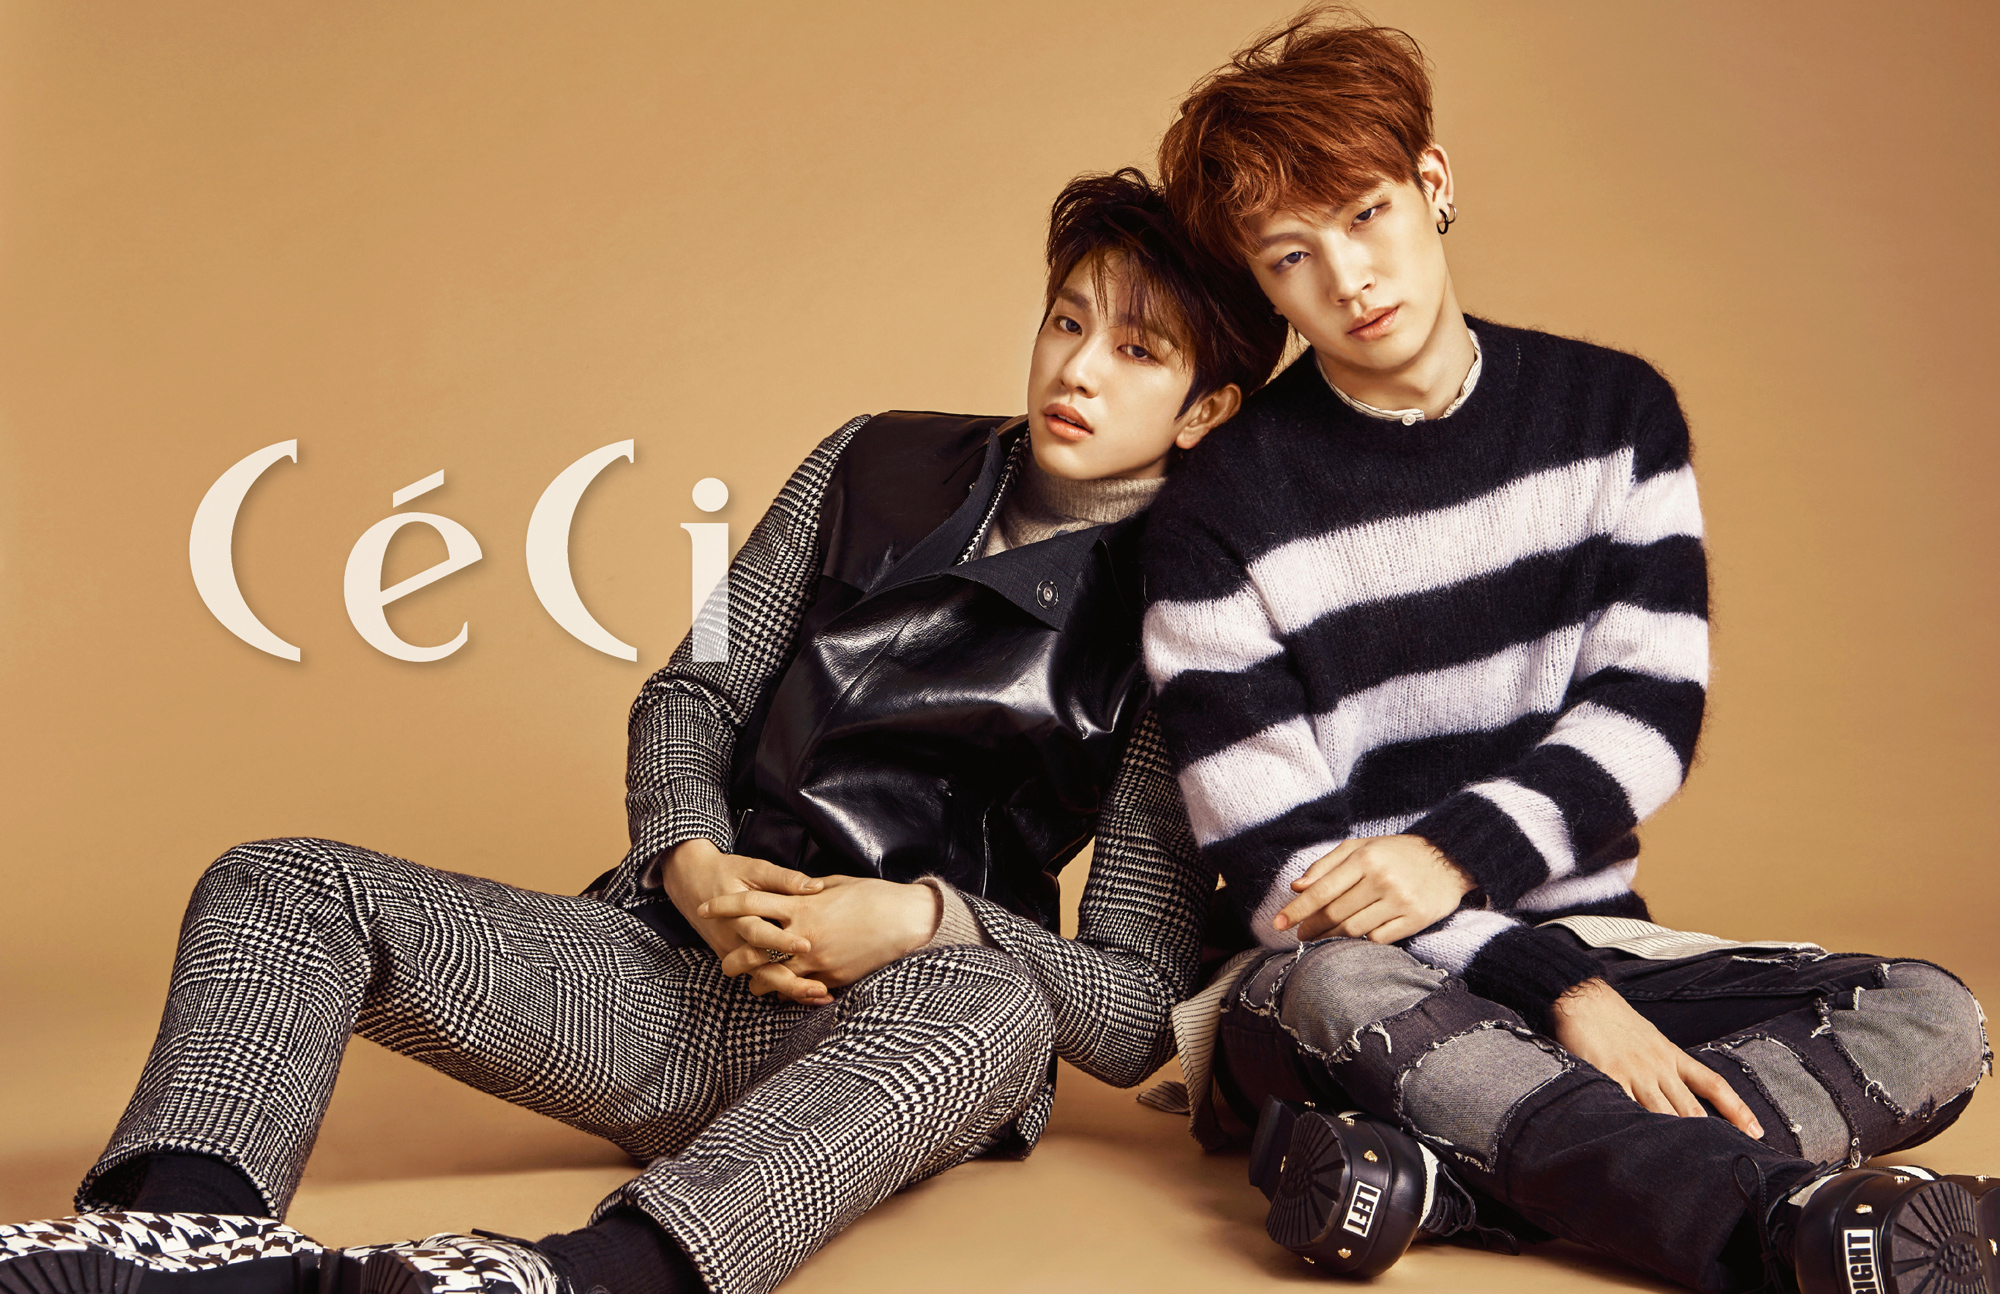 GOT7's JB and Junior Pair Up as a Hot Duo for CeCi | Soompi